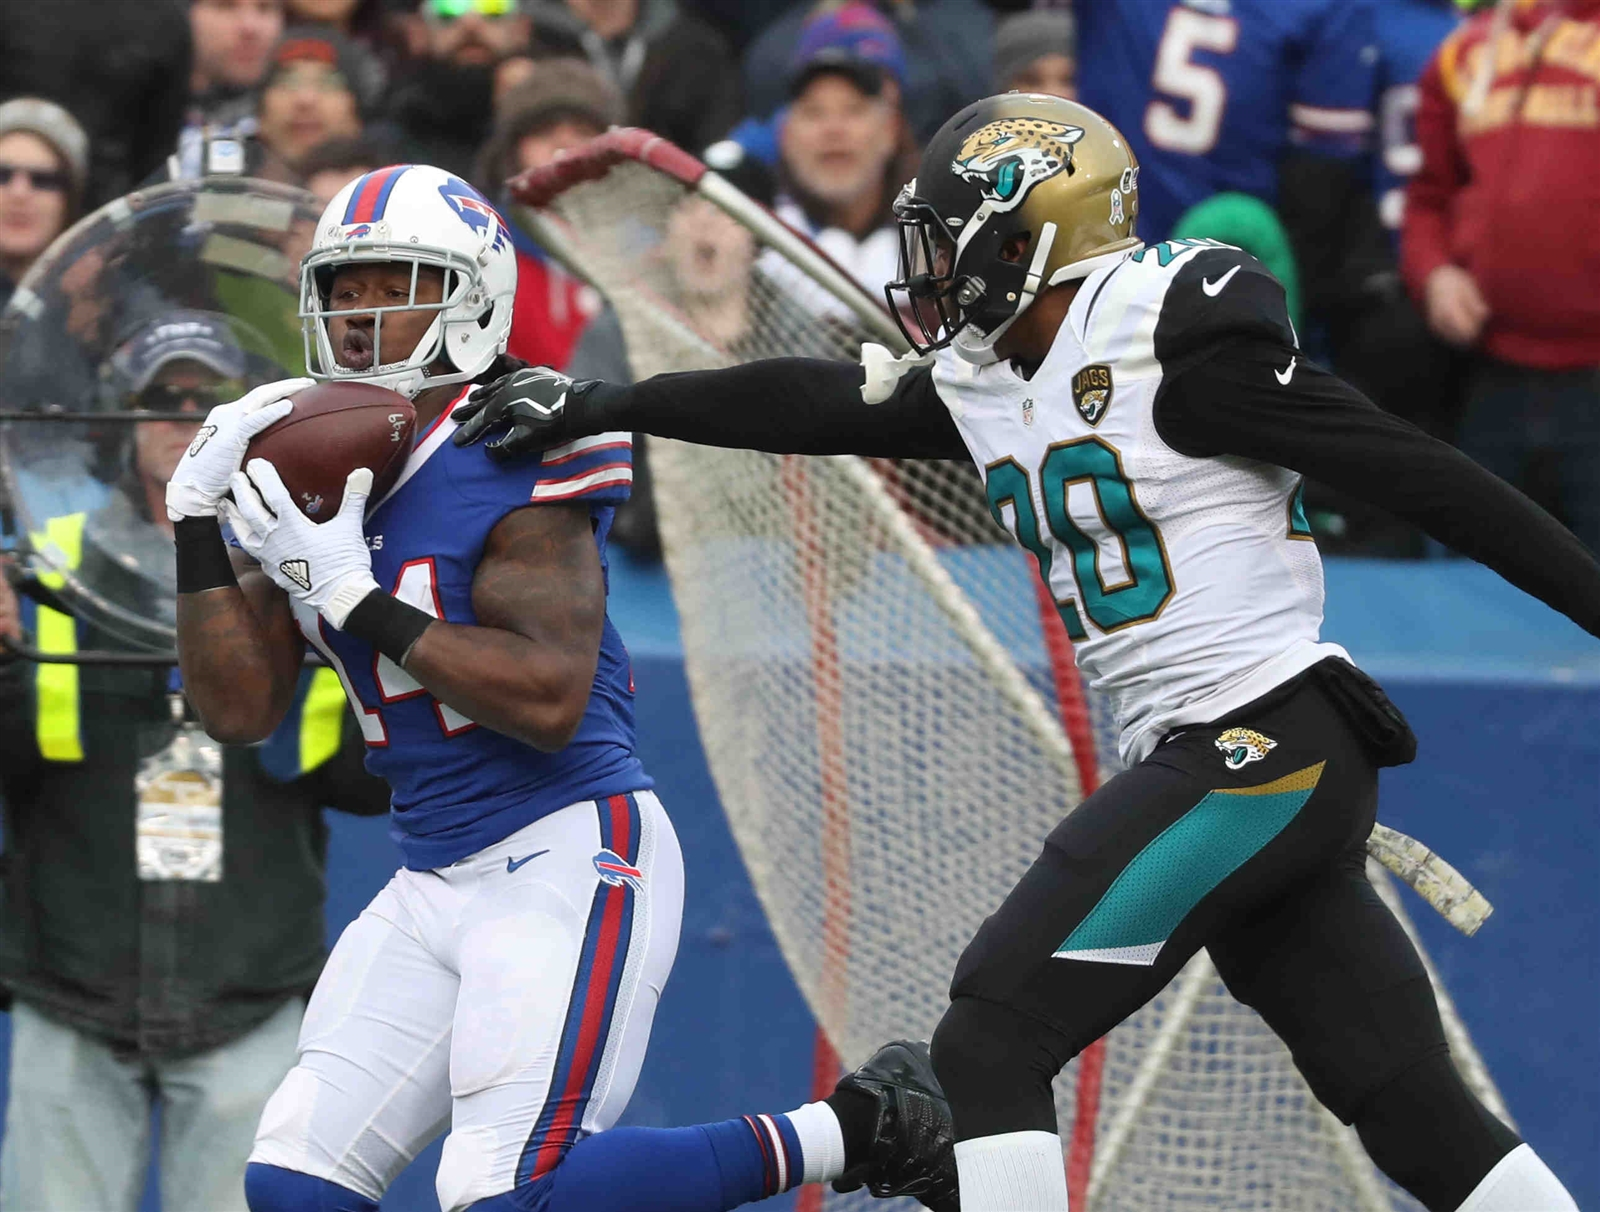 Buffalo Bills Sammy Watkins catches a pass in front of Jacksonville Jaguars Prince Amukamara during second quarter action at New Era Field on Sunday, Nov. 27, 2016. (Harry Scull Jr./Buffalo News)